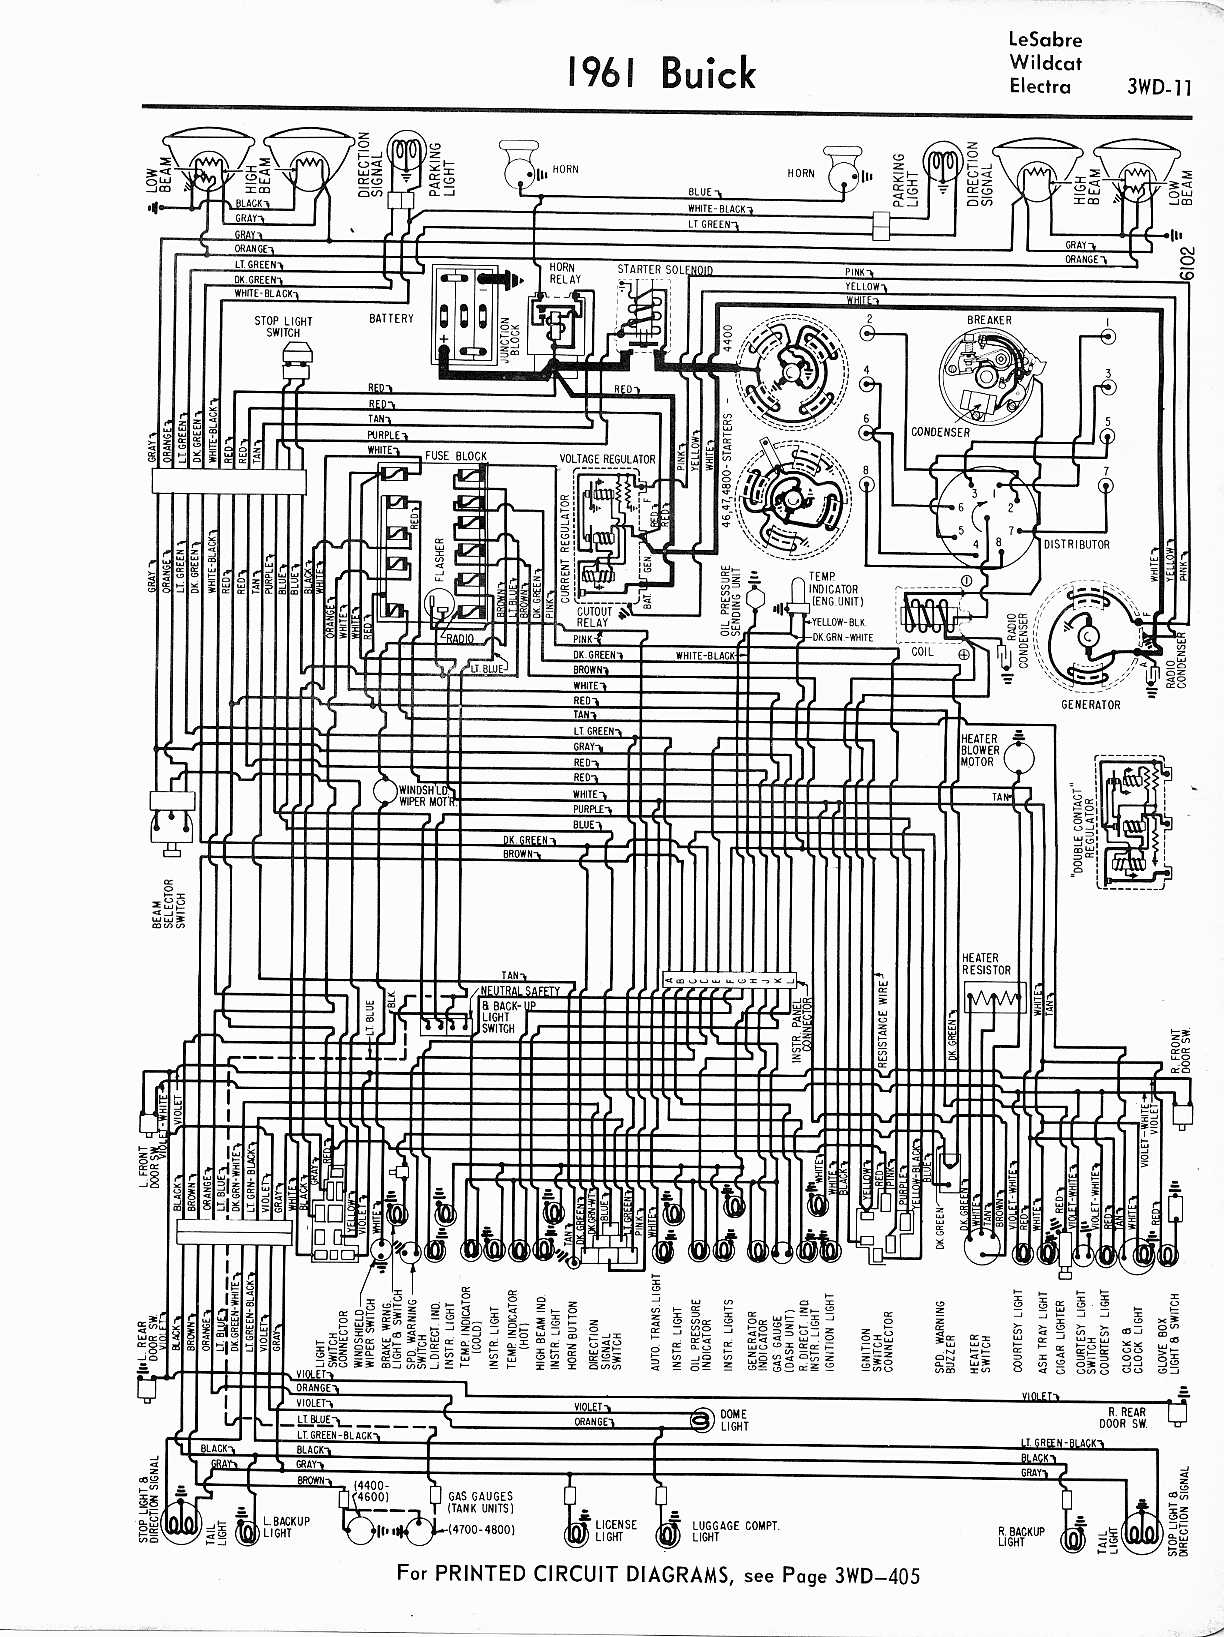 MWireBuic65_3WD 011 buick lesabre fuse box diagram wiring diagram simonand 1957 buick special fuse box location at gsmx.co